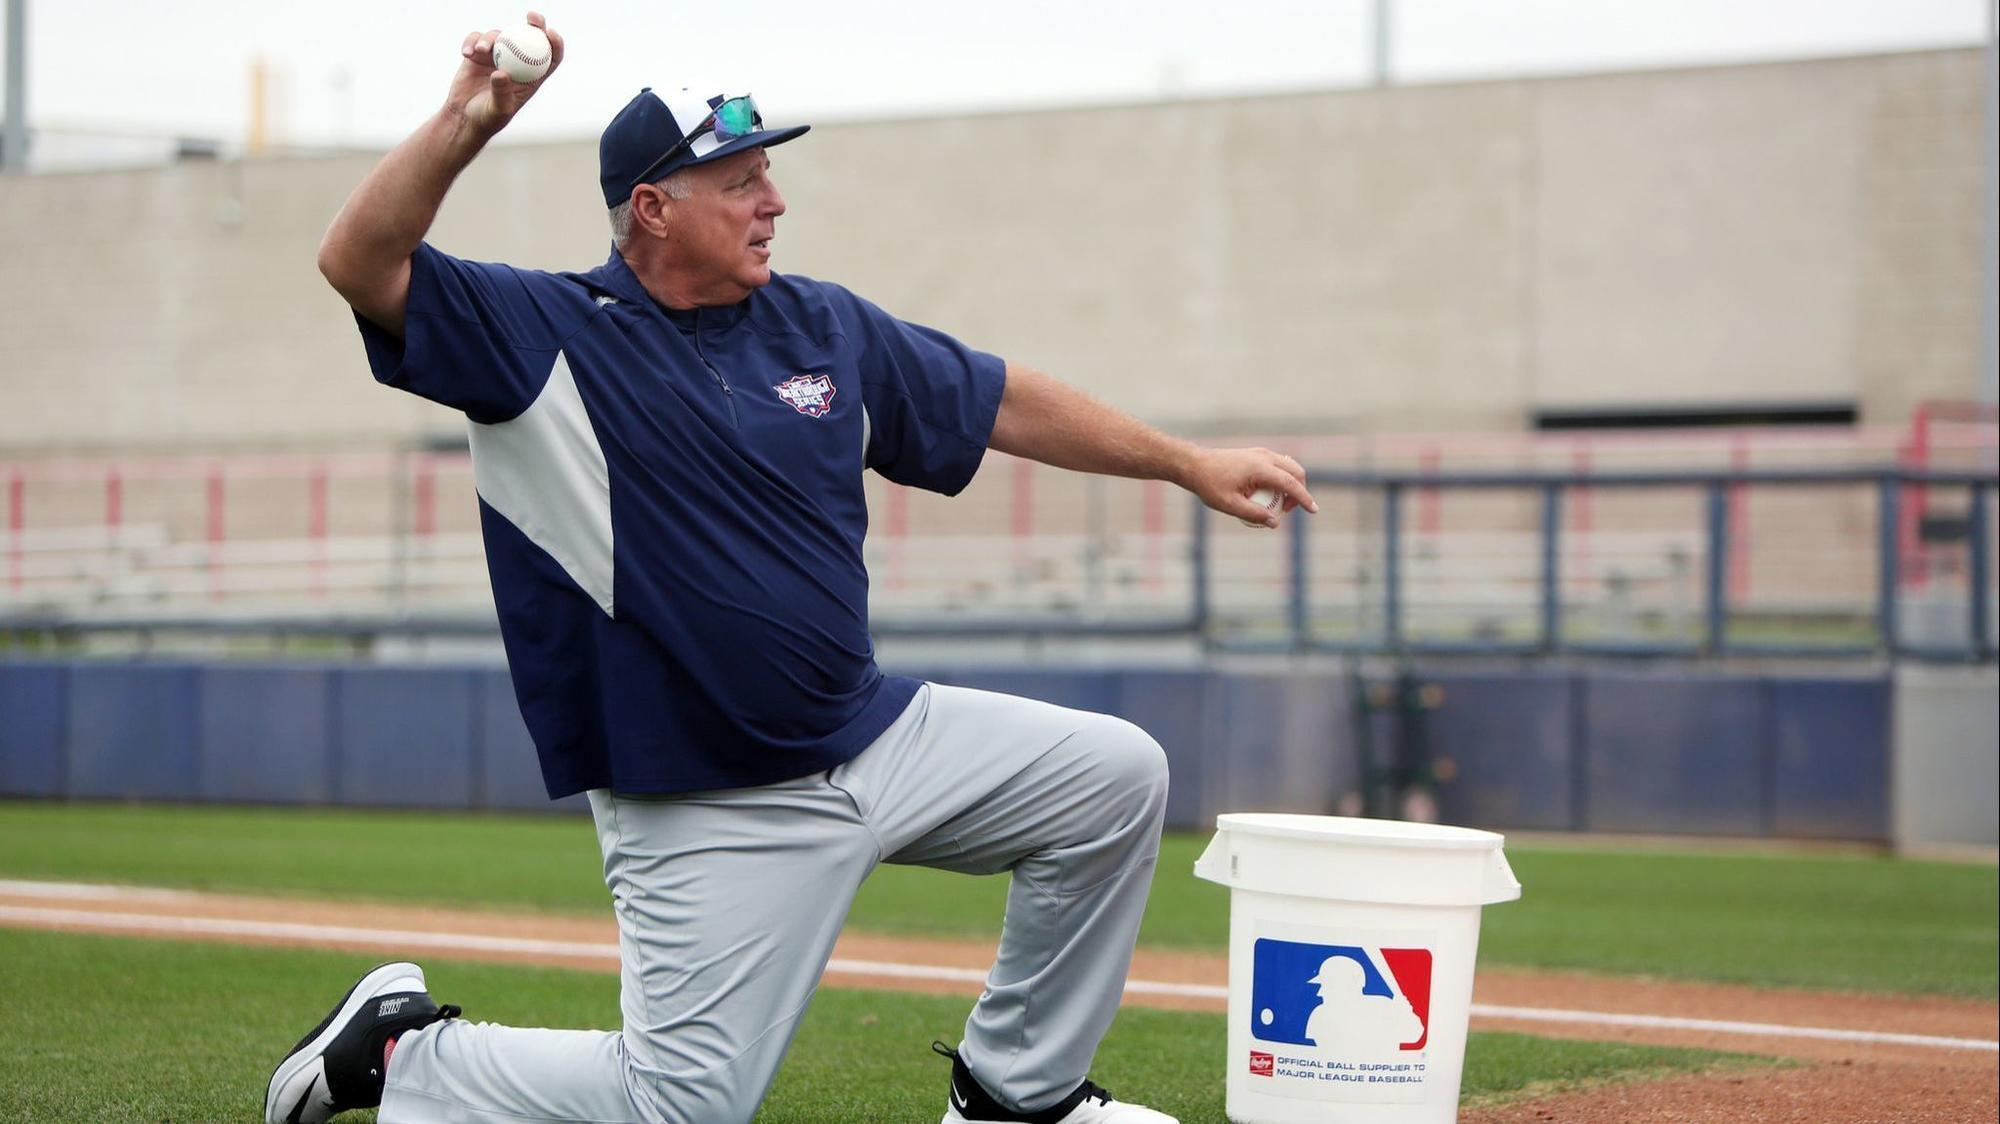 Even in retirement, Mike Scioscia is still all about the players and the game